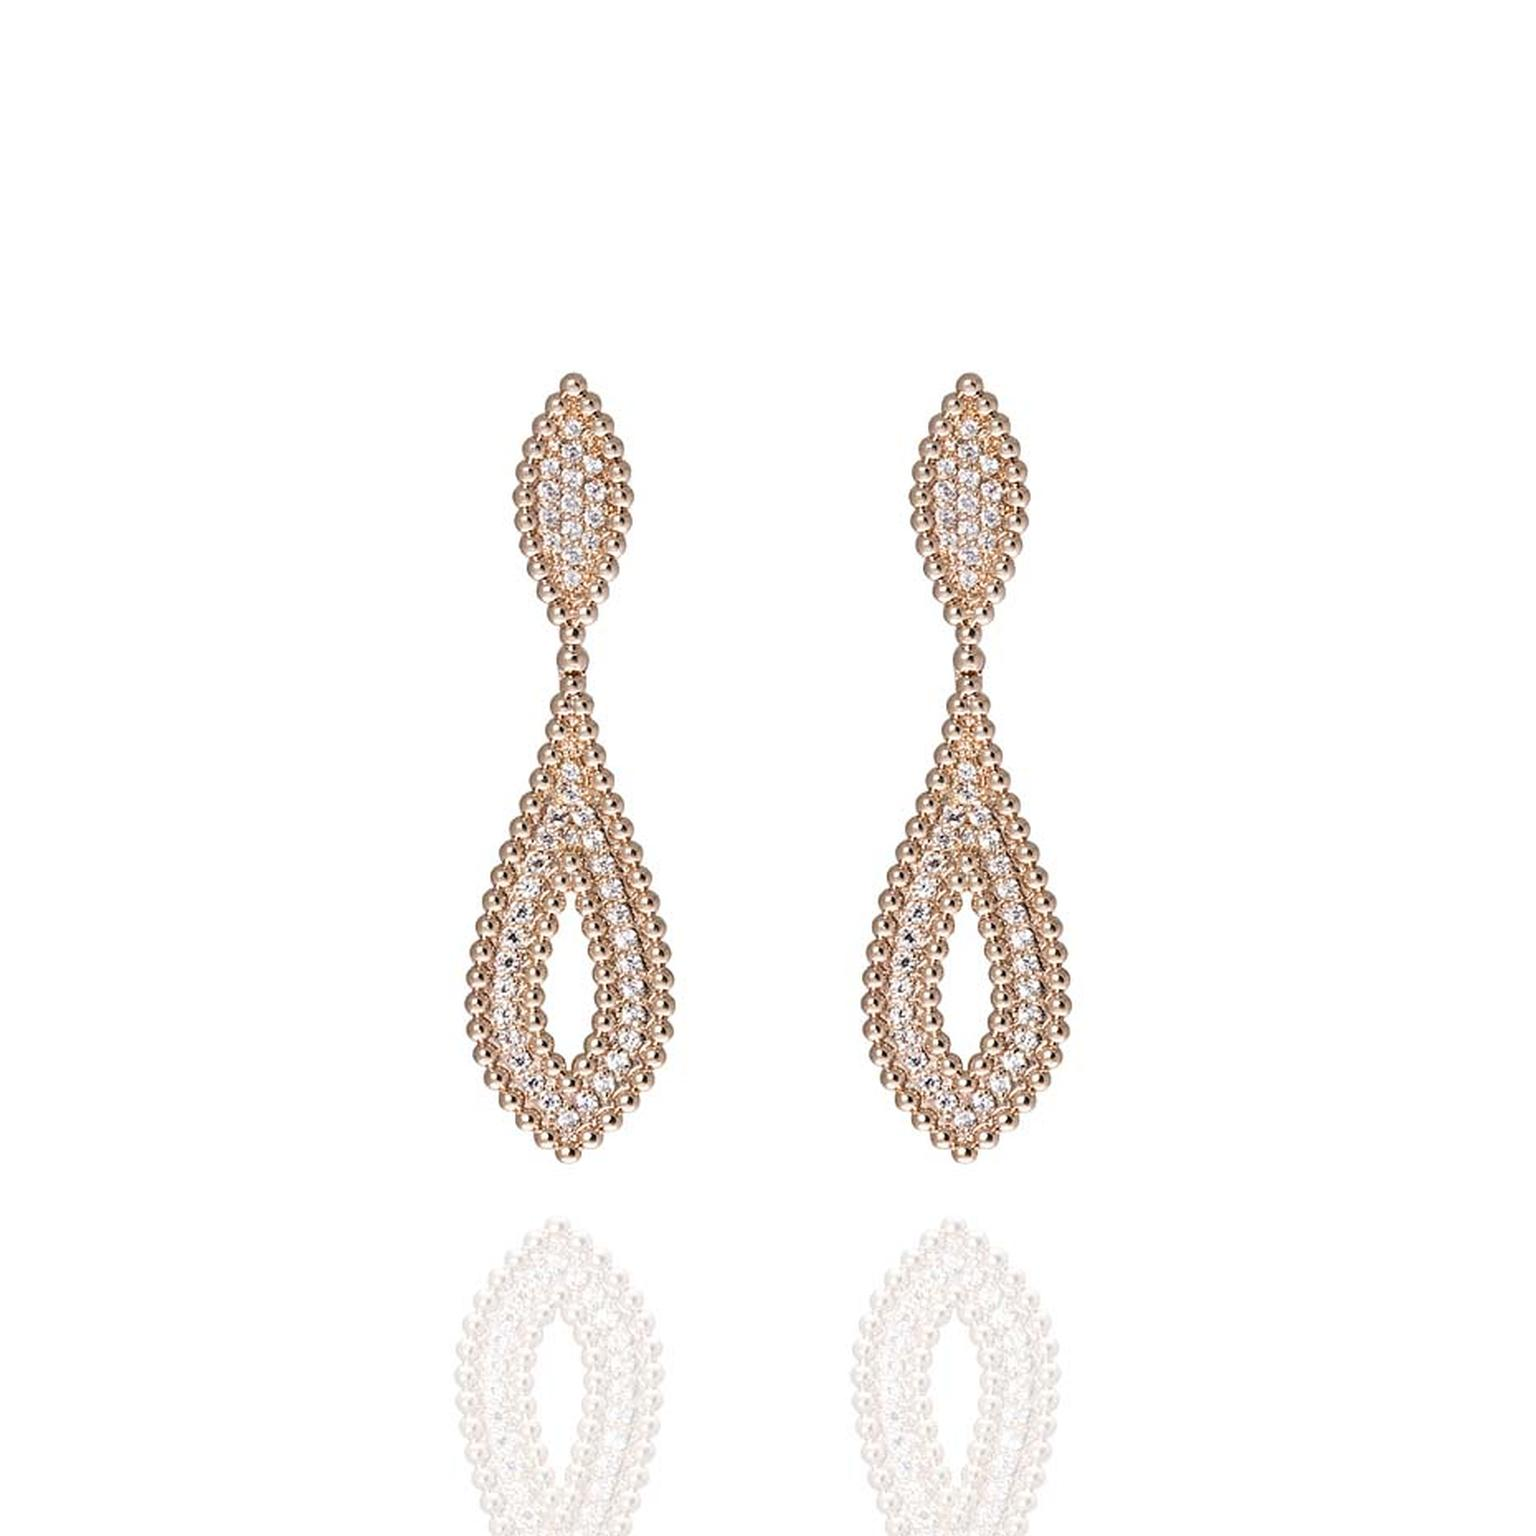 Carla Amorim Russia Collection rose gold Fountain earrings, inspired by the Peterhof Palace, known to many as the 'Russian Versailles.'